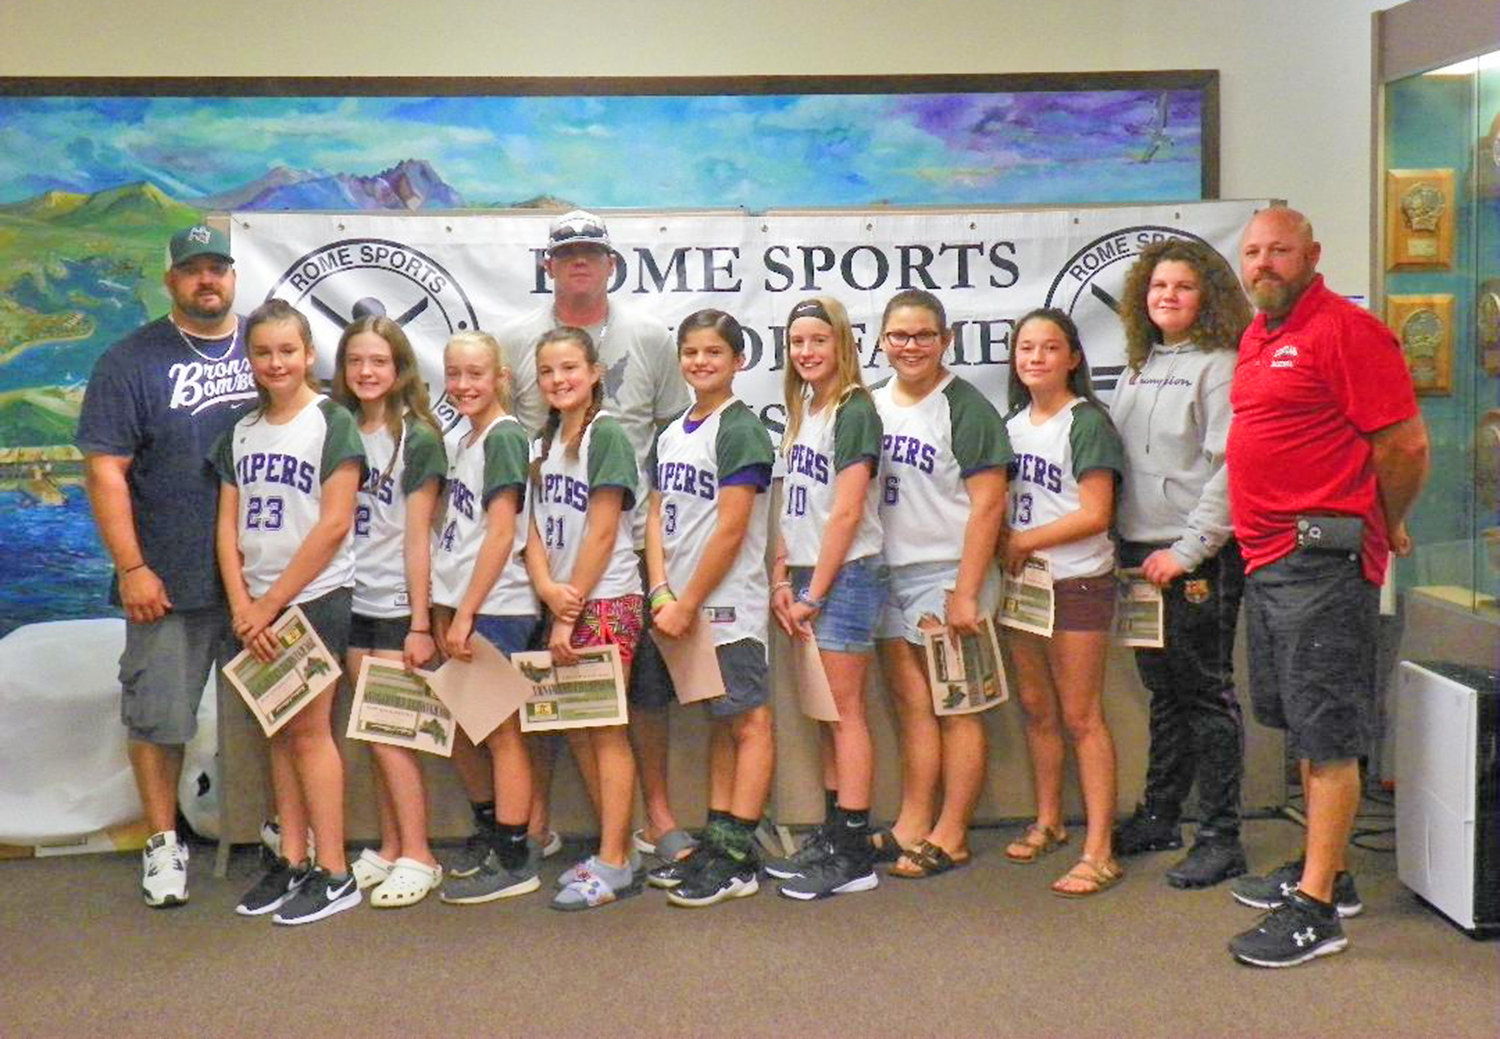 The Vipers were the Summer 12U Tournament champions in Rome Girls' Youth Softball.